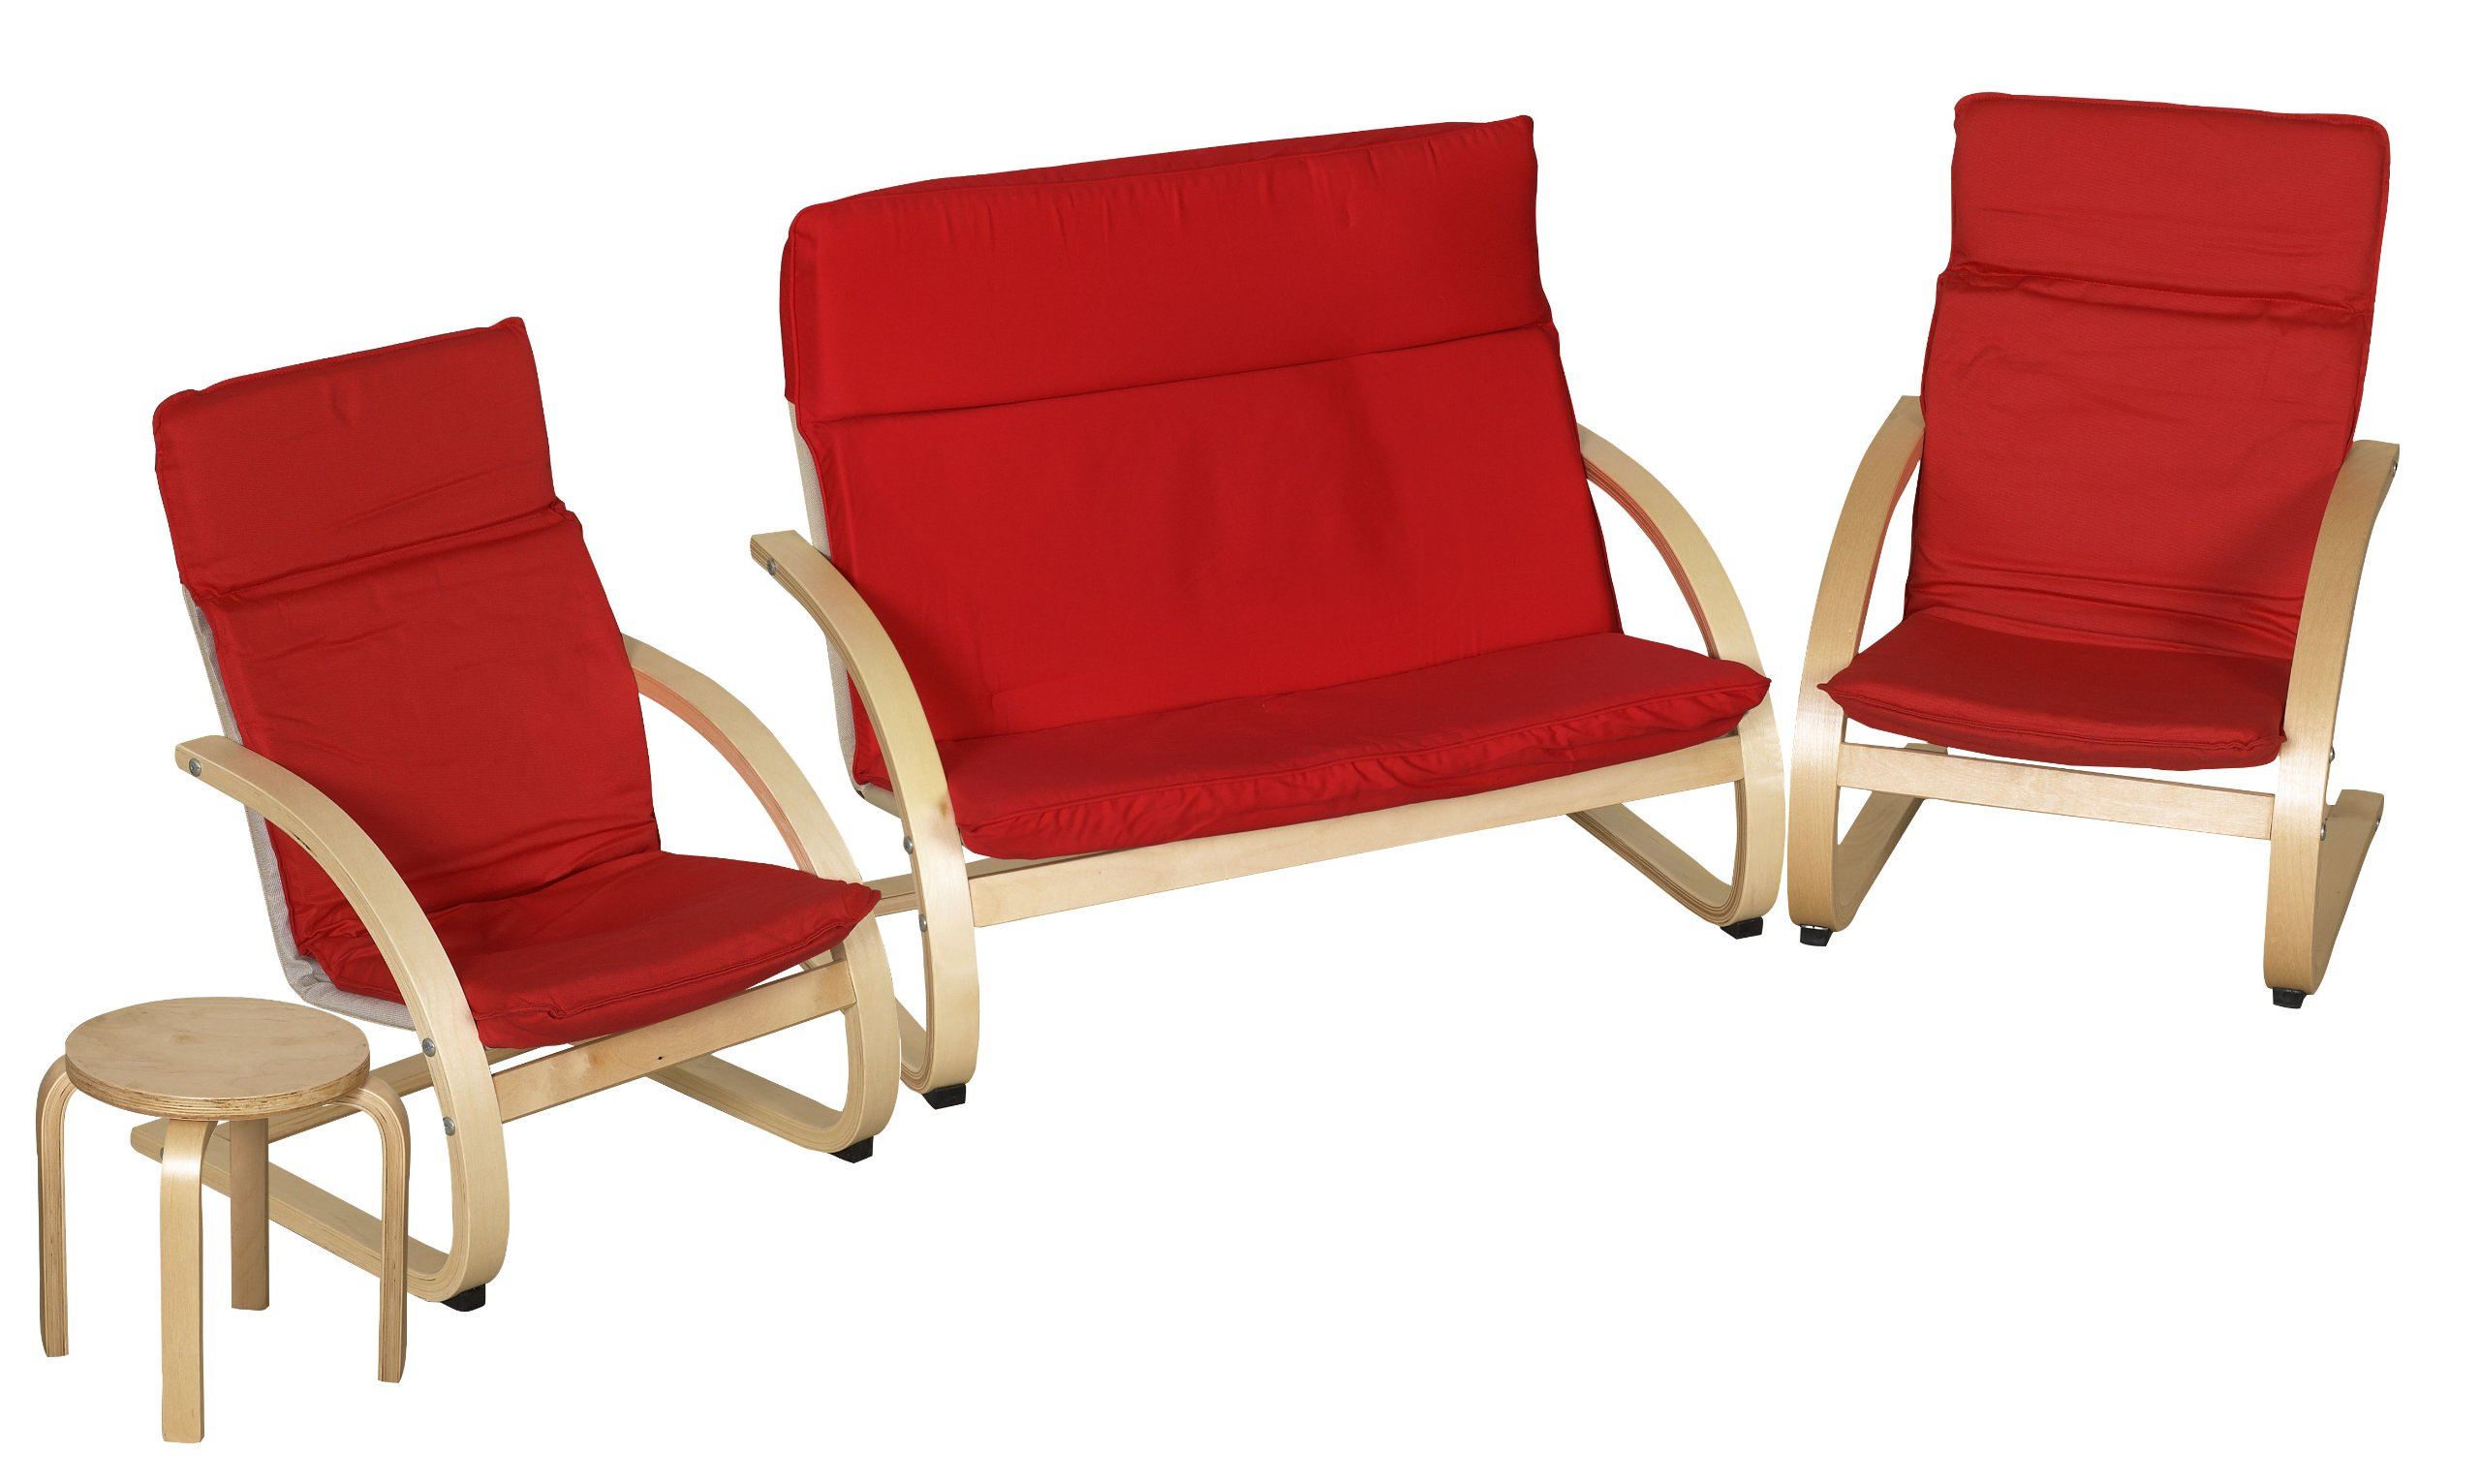 ECR4Kids Natural Bentwood Children's Table and Chair, Birch Finish with Red Cushions (4-Piece Set)